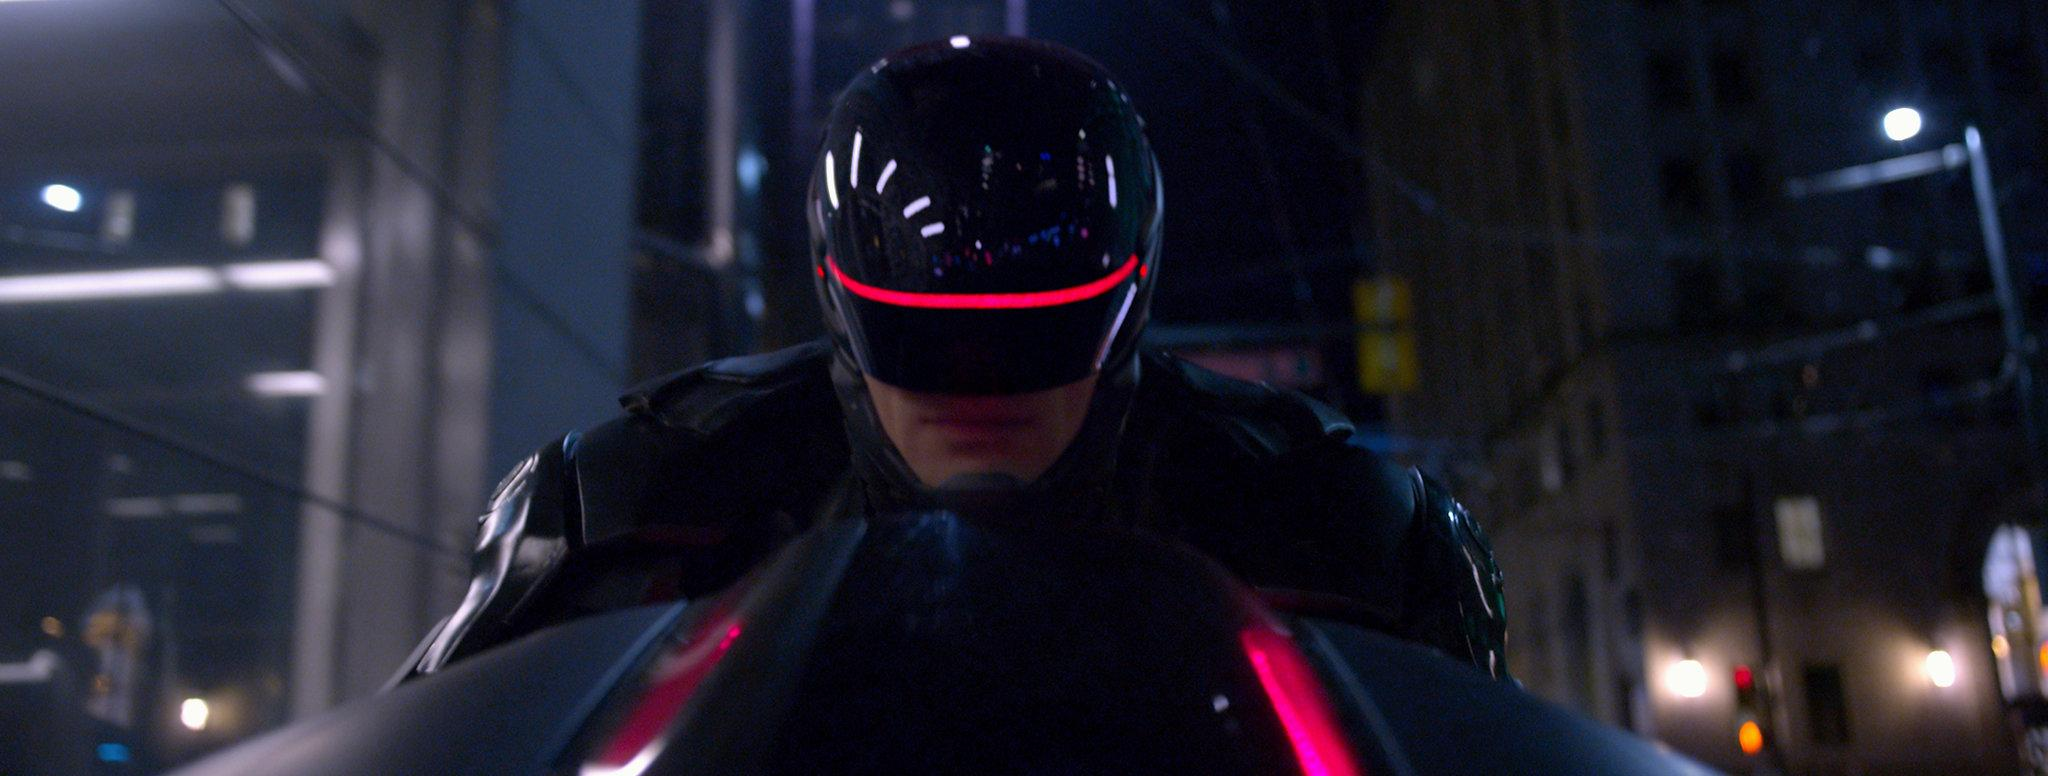 Daily Grindhouse In Theaters Now Robocop 2014 Daily Grindhouse